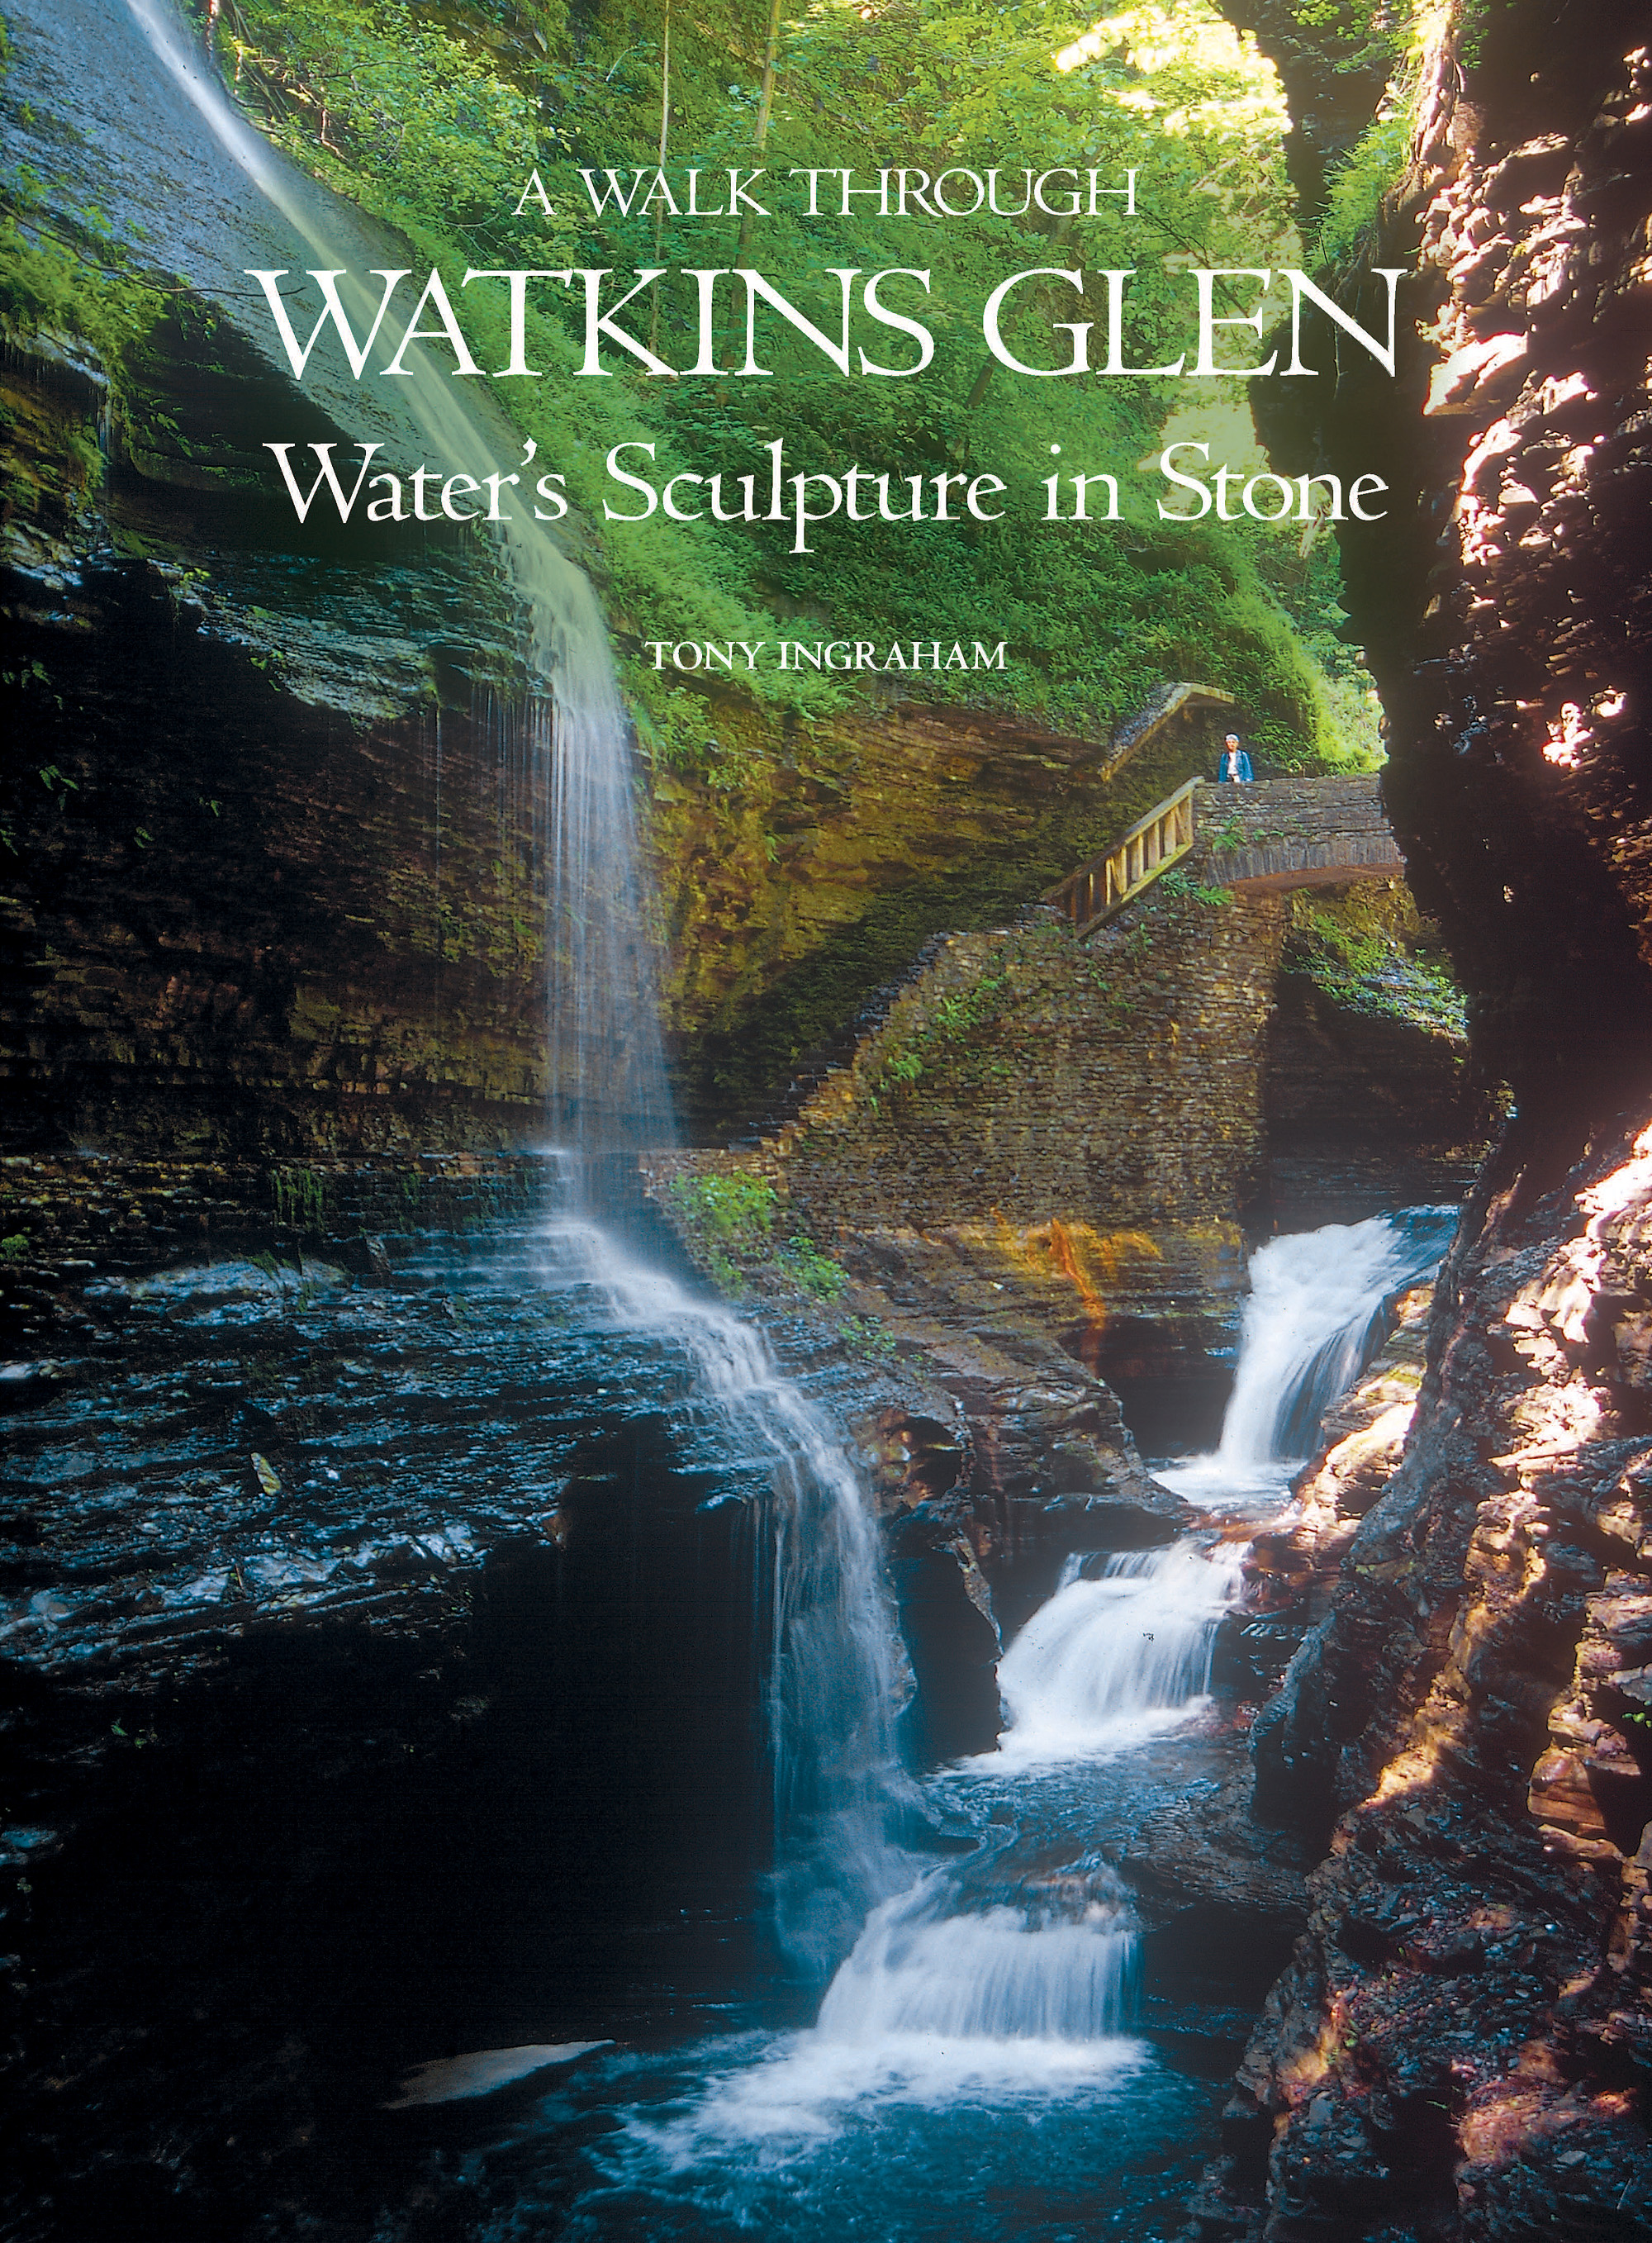 Our book: A Walk through Watkins Glen